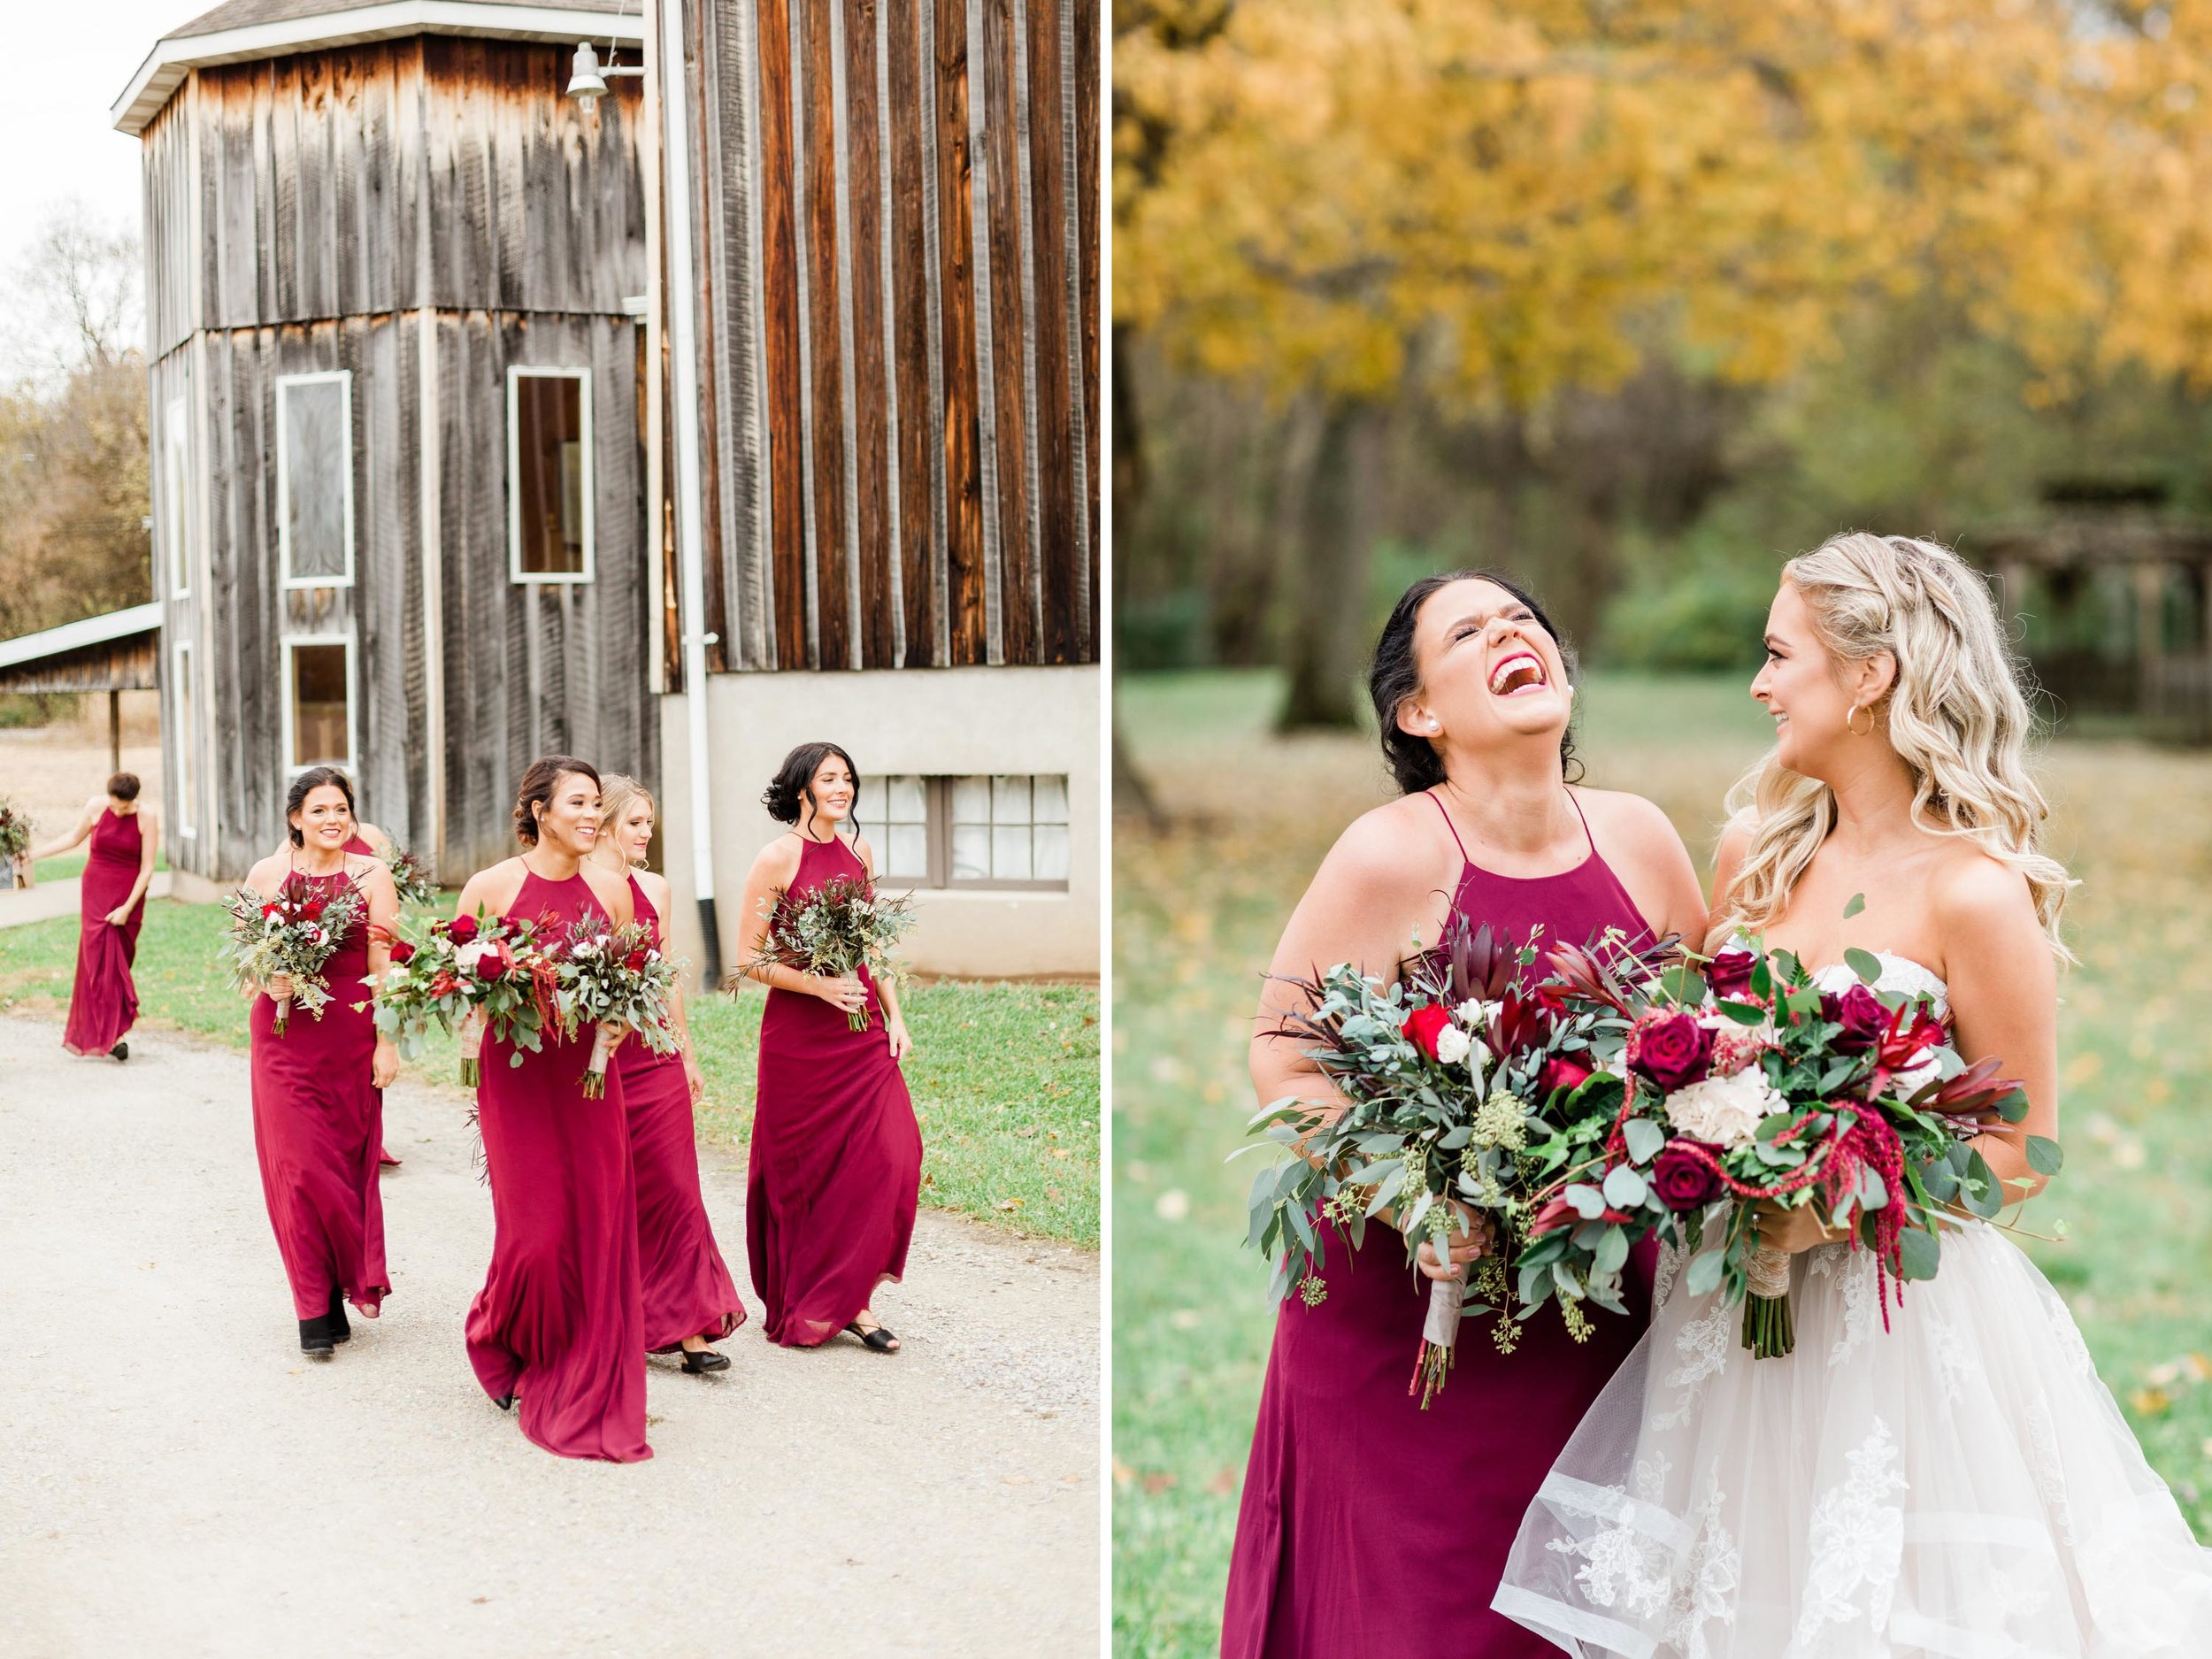 the heartland barn indiana wedding photography.jpg